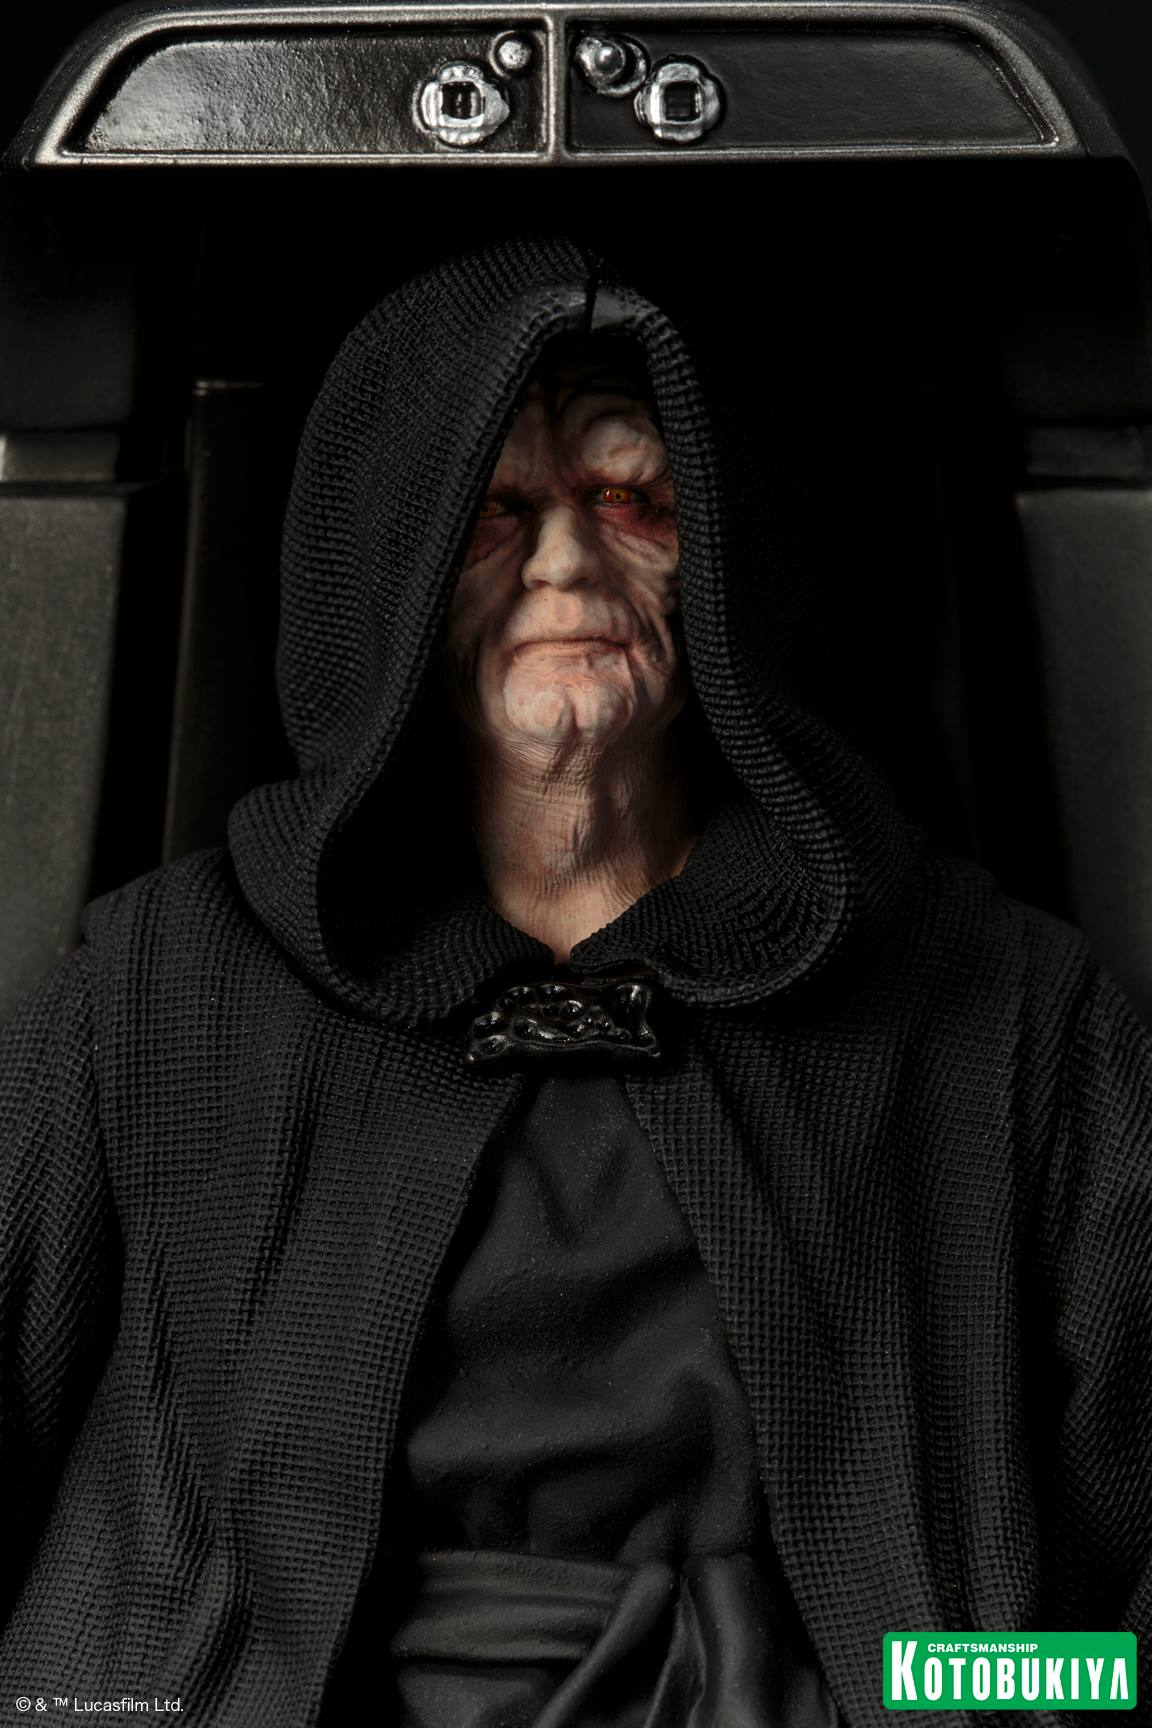 The Emperor Seven Tarot Cards From Different Packs Other: Official Photos And Info For Star Wars Emperor Palpatine